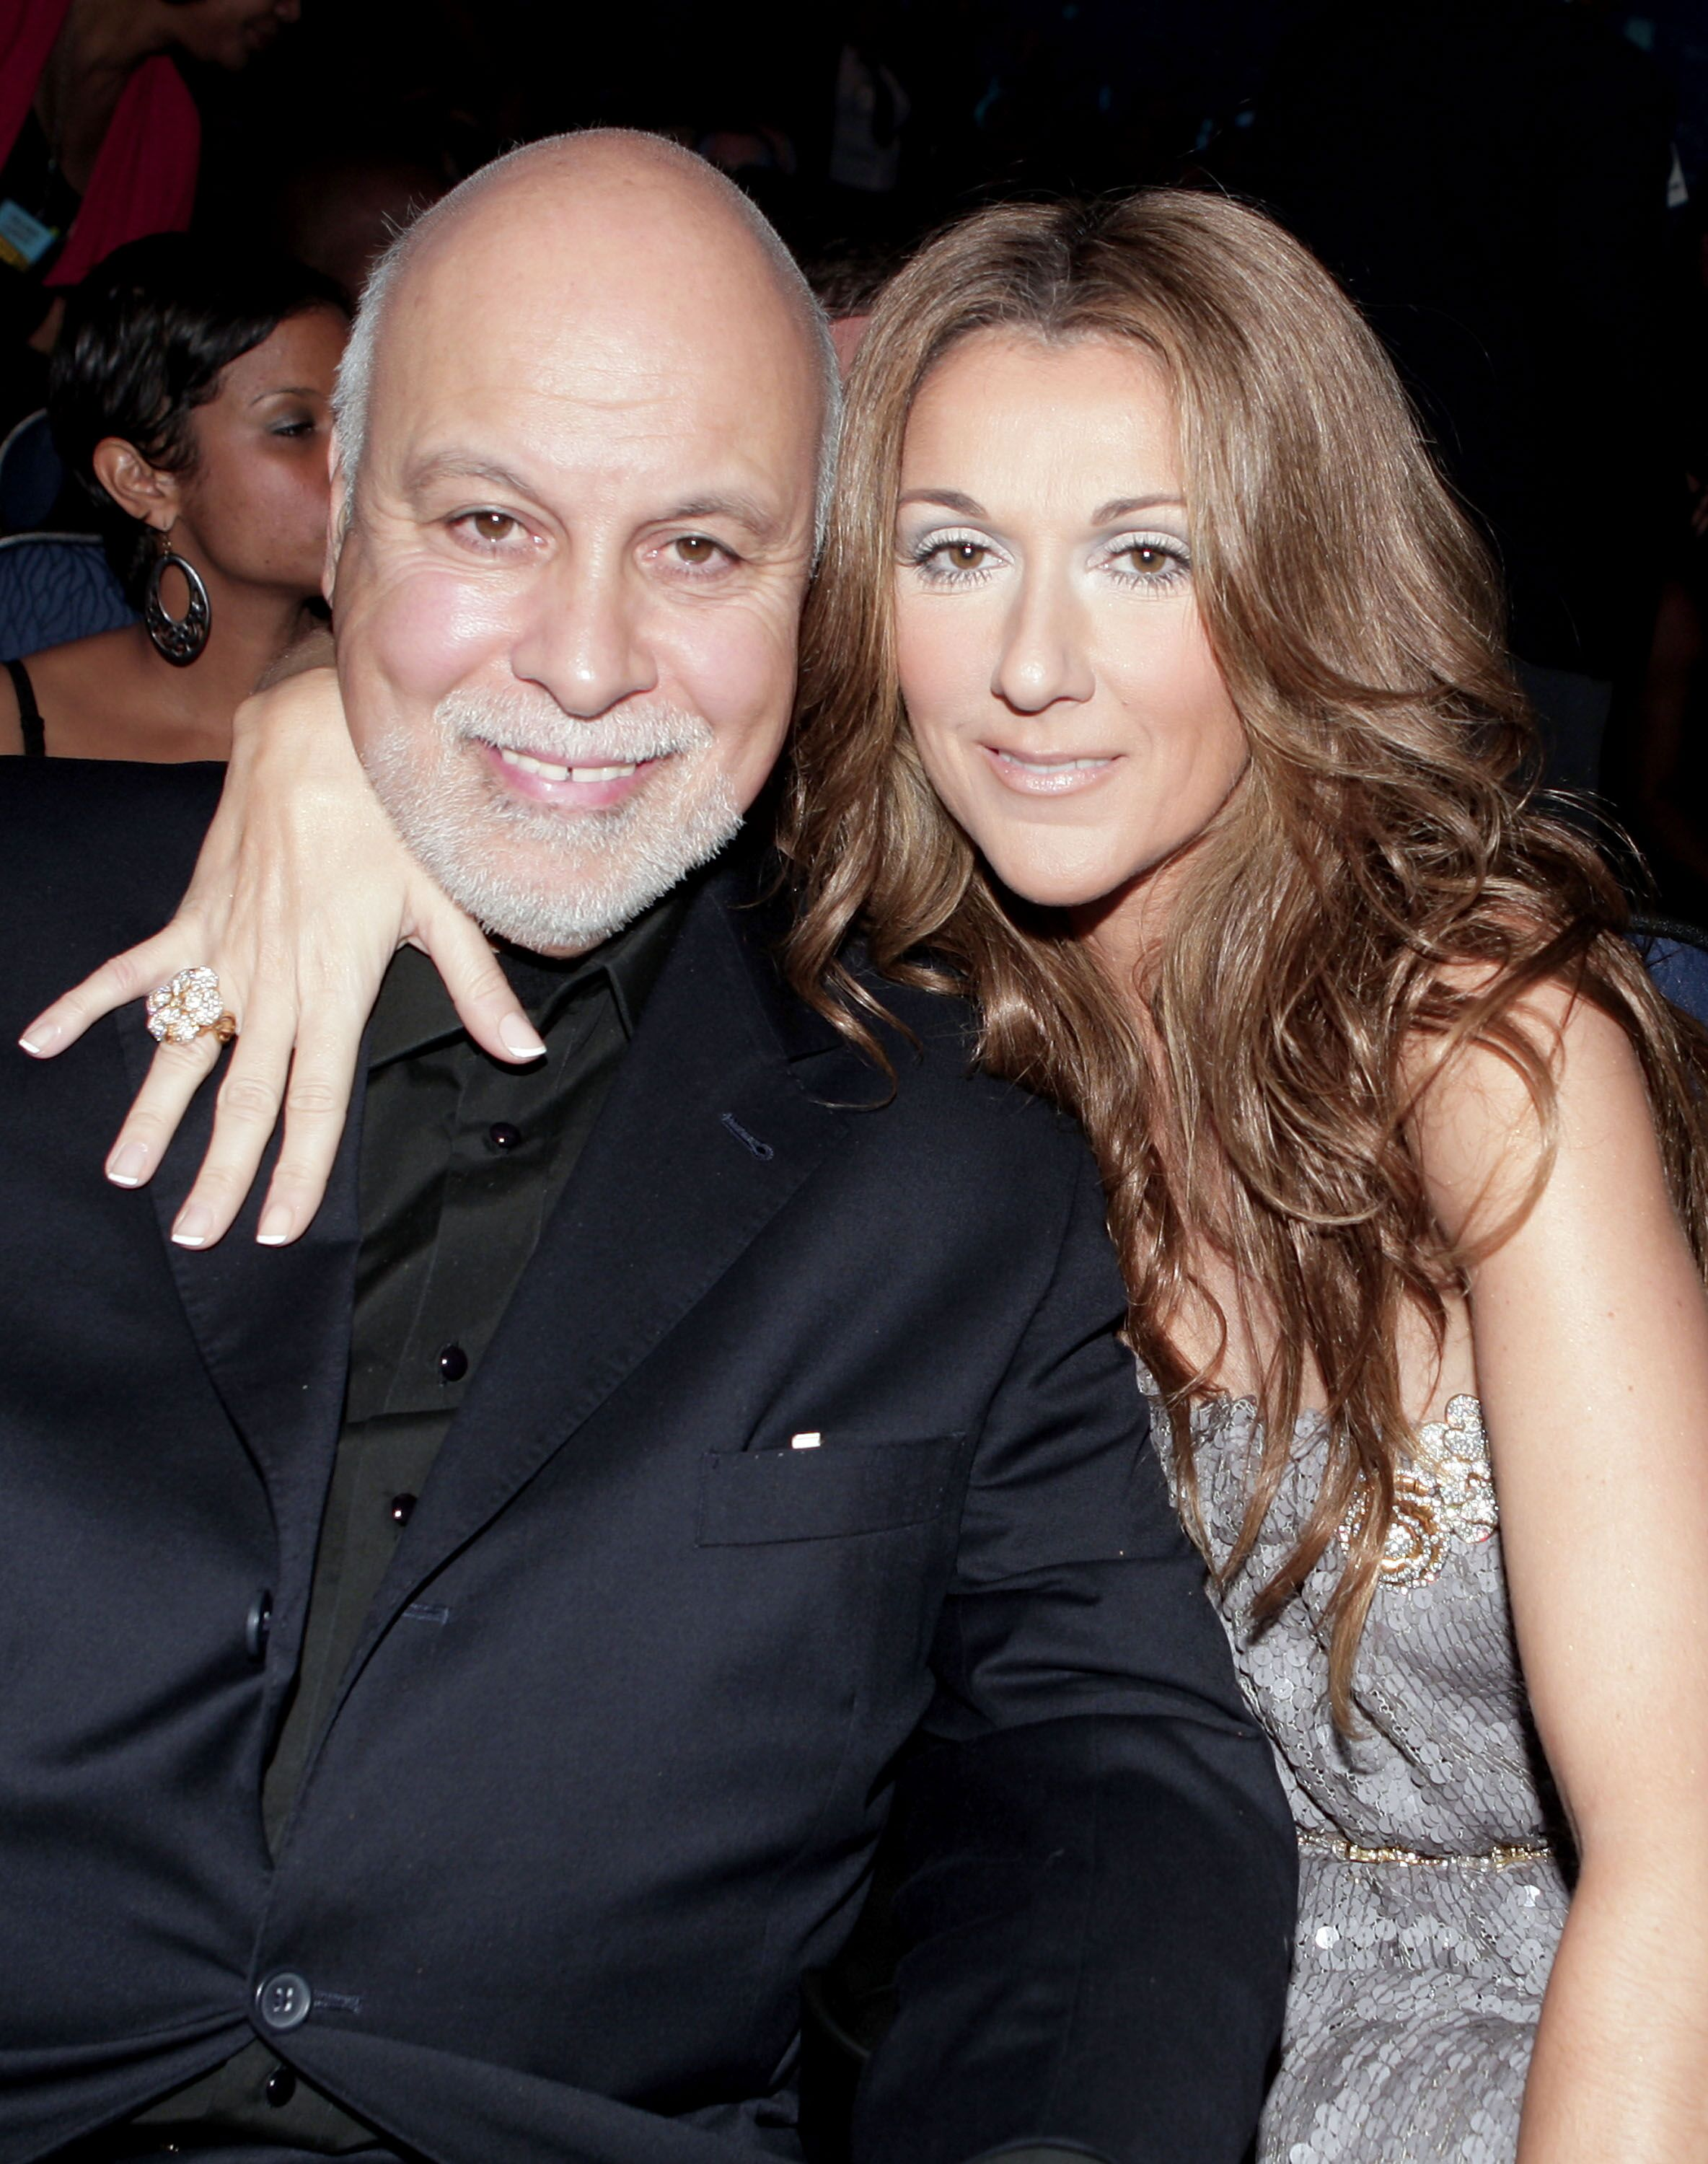 Rene Angelil and Celine Dion in the audience during the American Music Awards on November 18, 2007, in Los Angeles, California | Photo: Kevin Winter/AMA/Getty Images